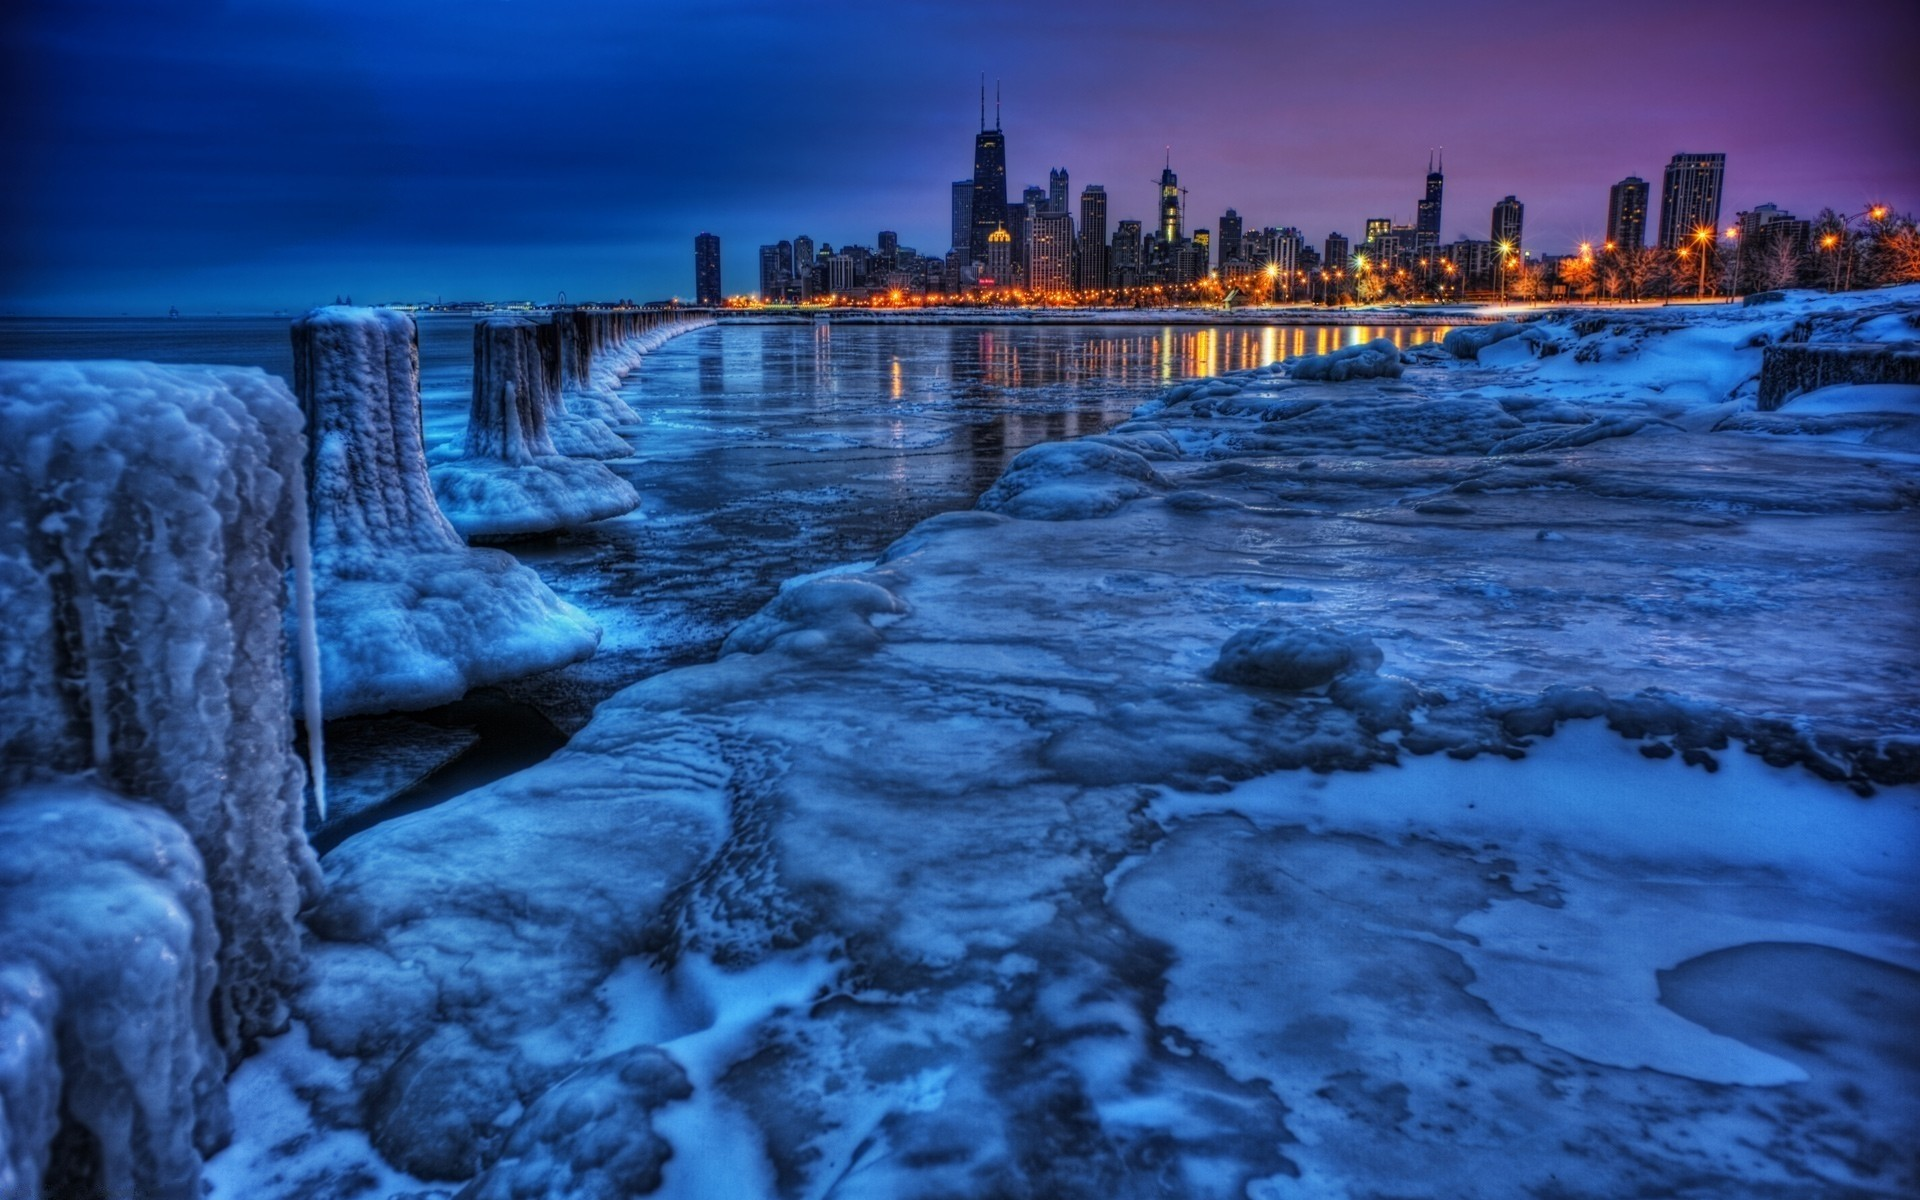 other city water sunset travel dusk evening dawn reflection sky river sea winter landscape city light snow outdoors beach seashore ocean ice lake background